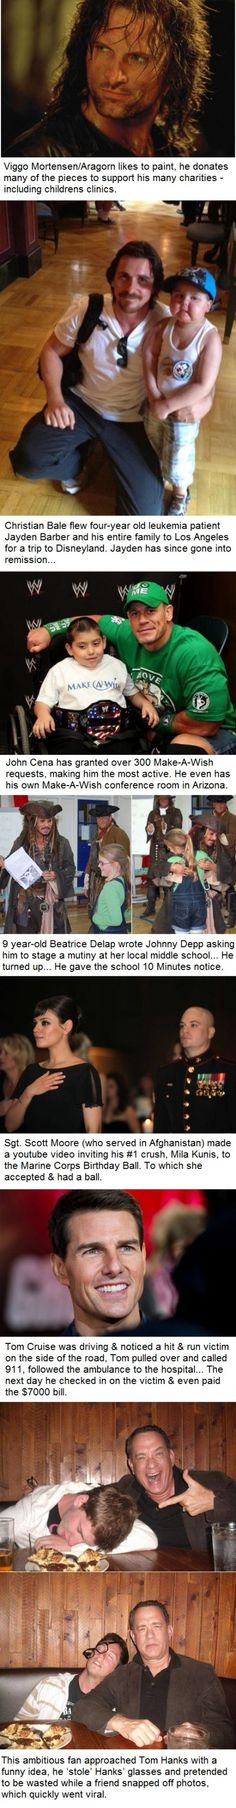 When your faith in humanity needs to be restored - Imgur